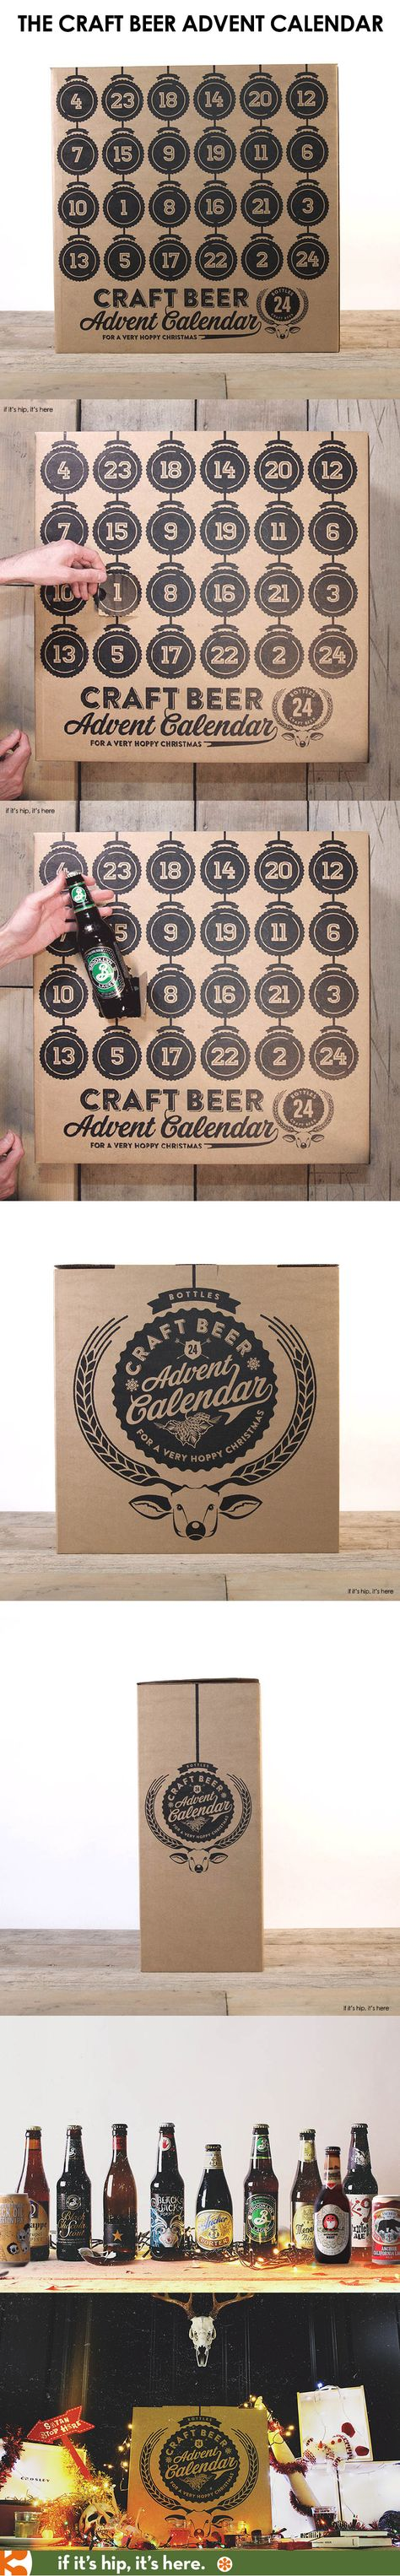 The Christmas Craft Beer Advent Calendar is a festive way to countdown to the Holidays!